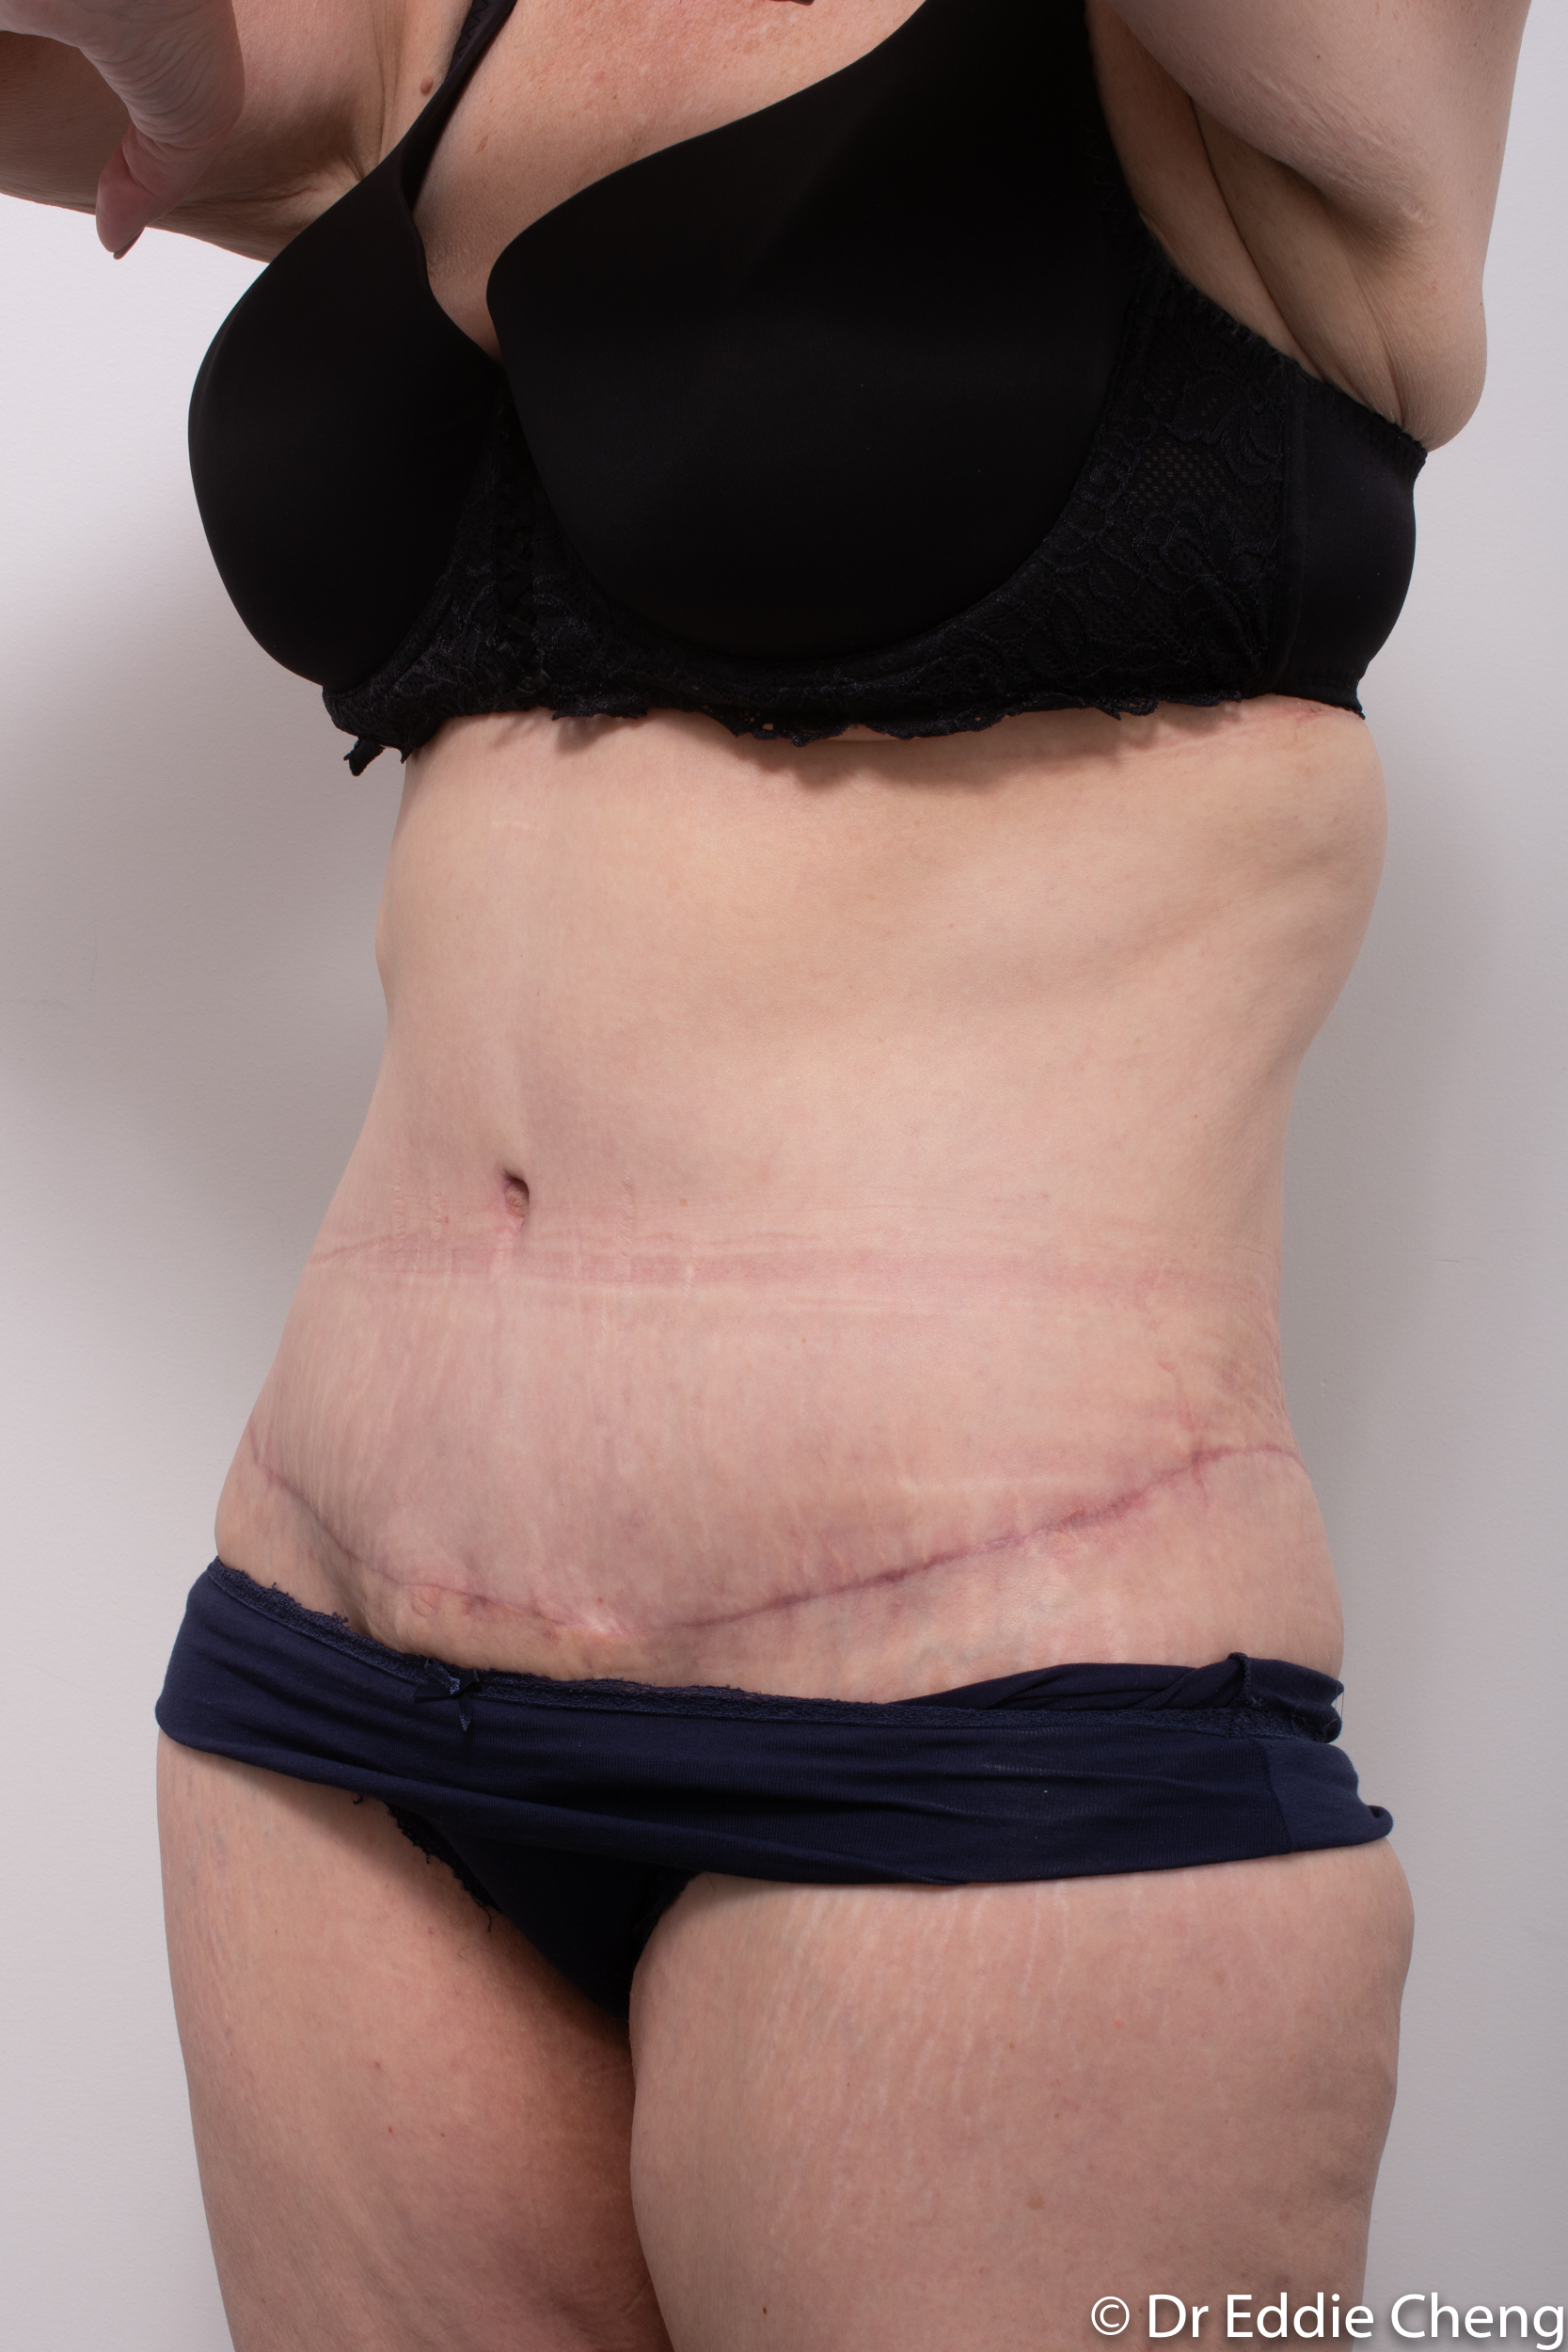 Body lift circumferential dr eddie cheng brisbane surgeon pre and post operative images -2-2